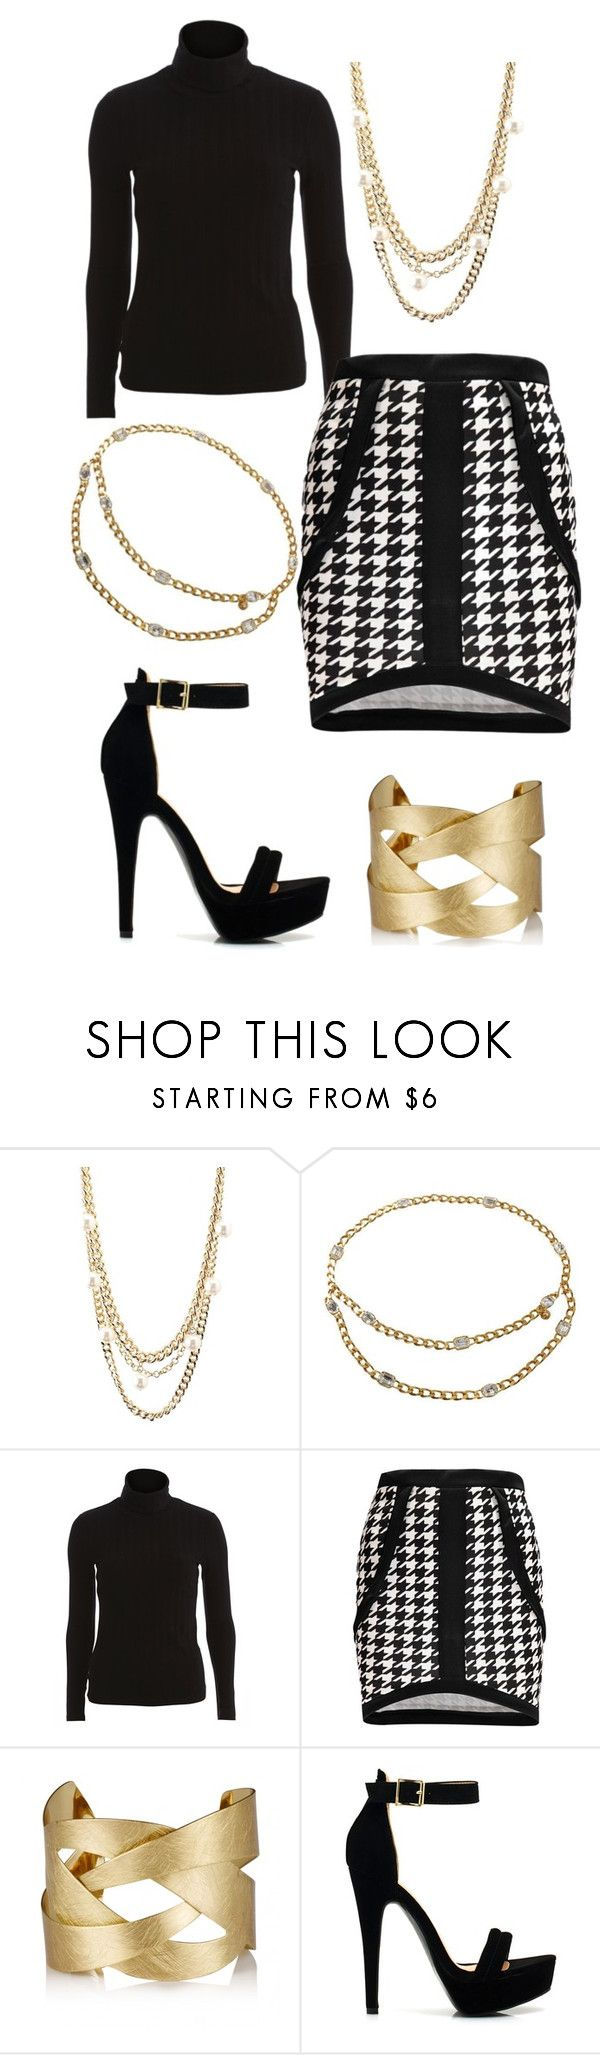 """""""Throwback Thursday: Jasmine Guy as Whitley Gilbert"""" by thereclaimedblog ❤ liked on Polyvore featuring Charlotte Russe, Vila Milano, Boohoo, N.Y.L.A., Spring, outfit, BloggerStyle and tvshow"""